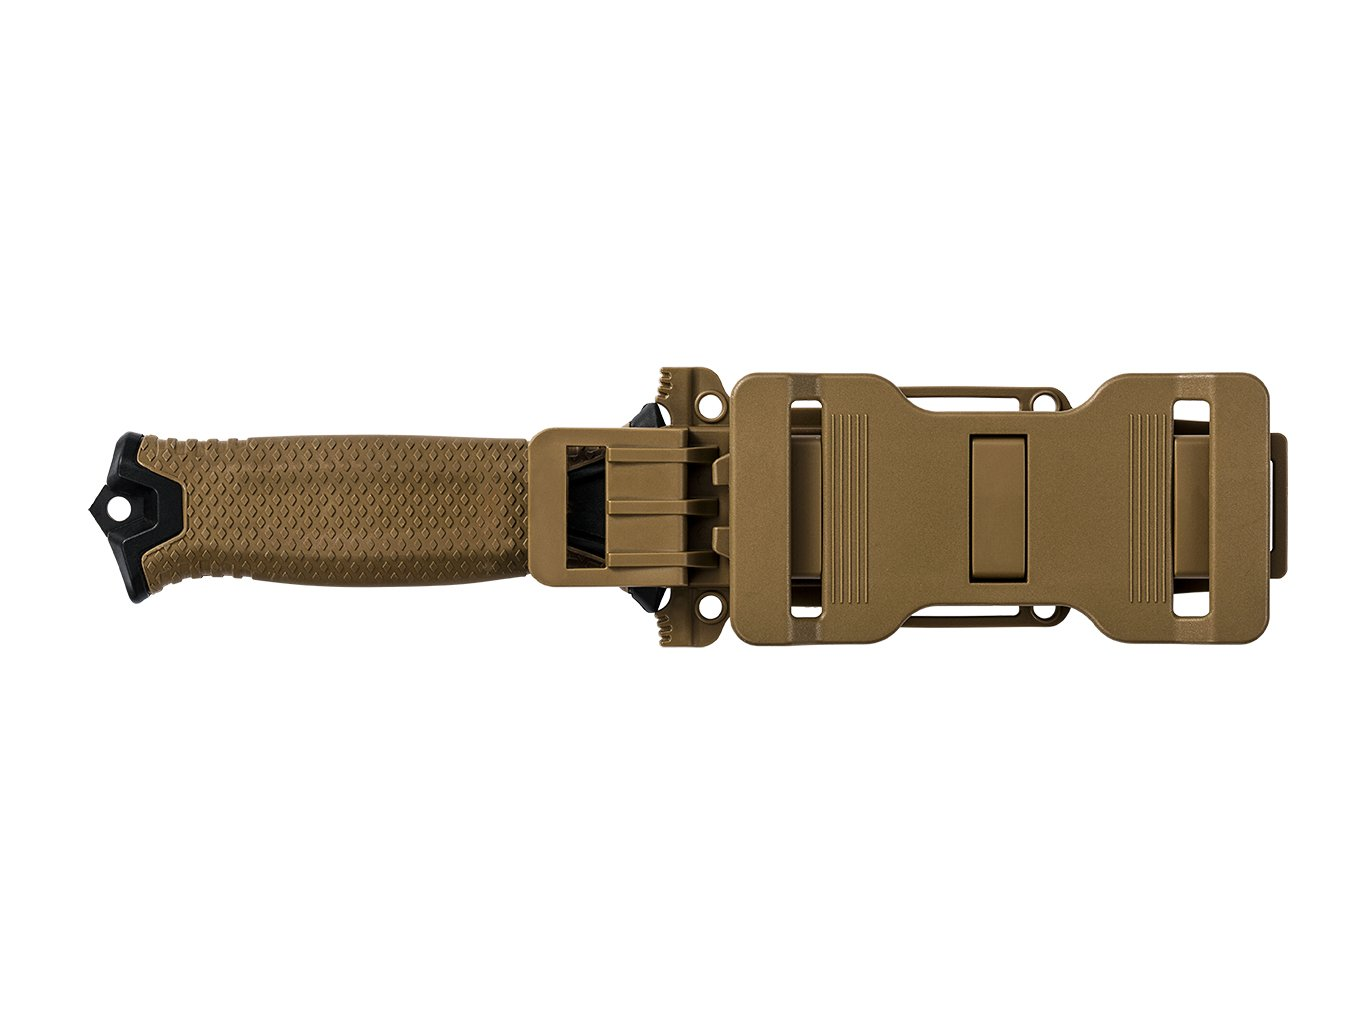 Gerber StrongArm 420 High Carbon Stainless Steel Fixed Blade Full Tang Knife with Molle Compatible Multi-Mount Sheath - Serrated Edge - Coyote Brown (30-001059) by Gerber (Image #4)